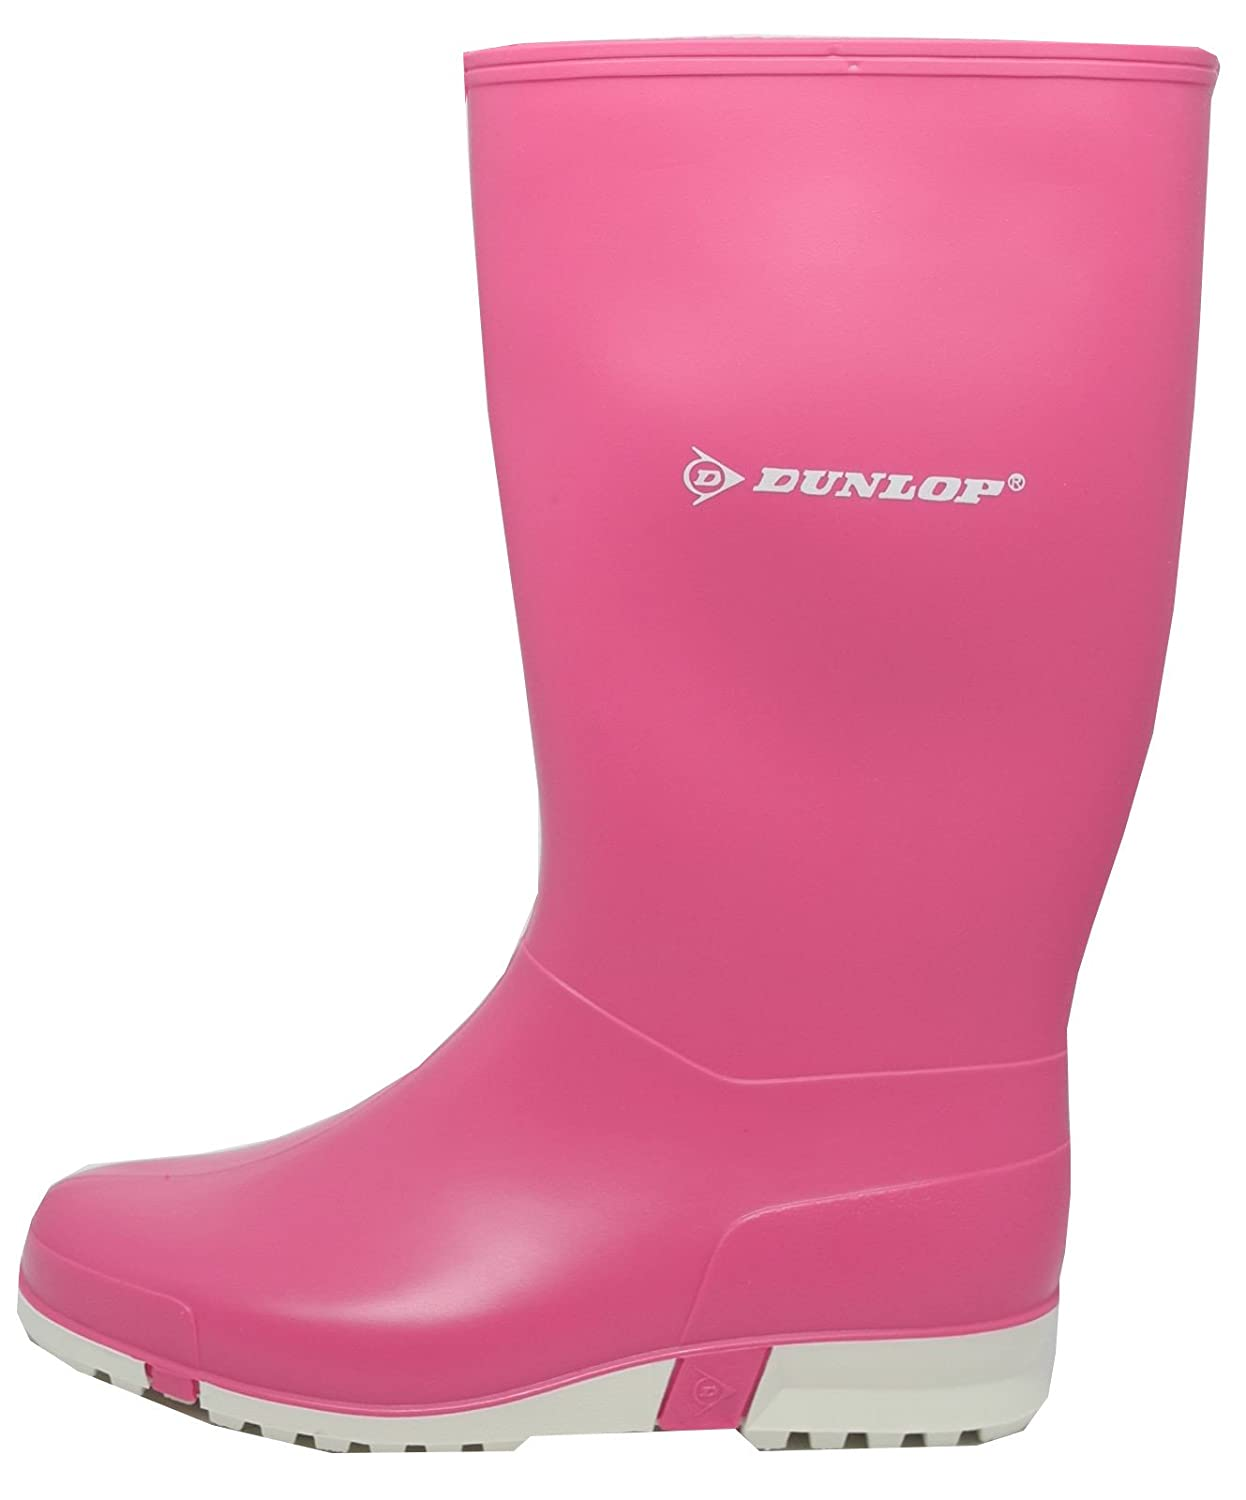 official store pre order buying now Dunlop Ladies Womens Pink Wellies Sport Rubber Wellington Boots Sizes 4-8